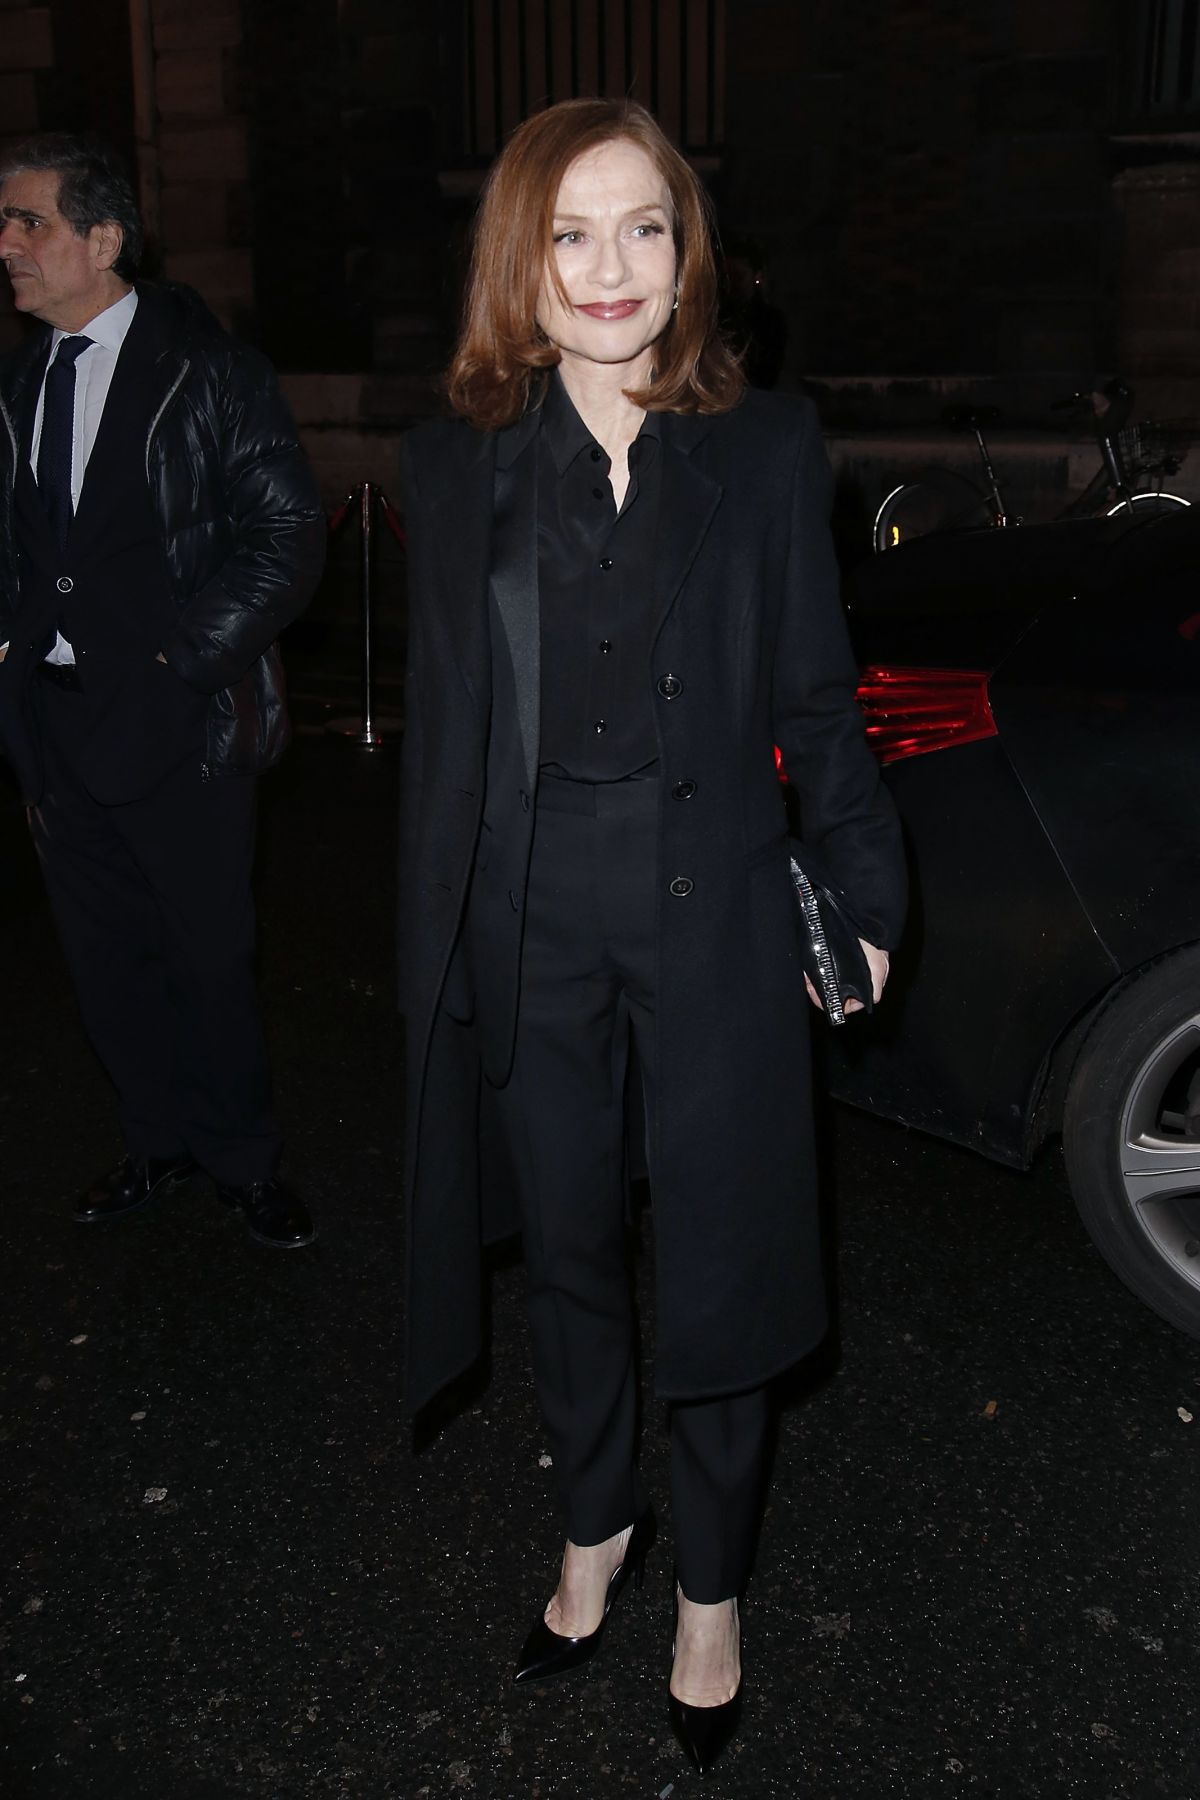 ISABELLE HUPPERT Arrives at L